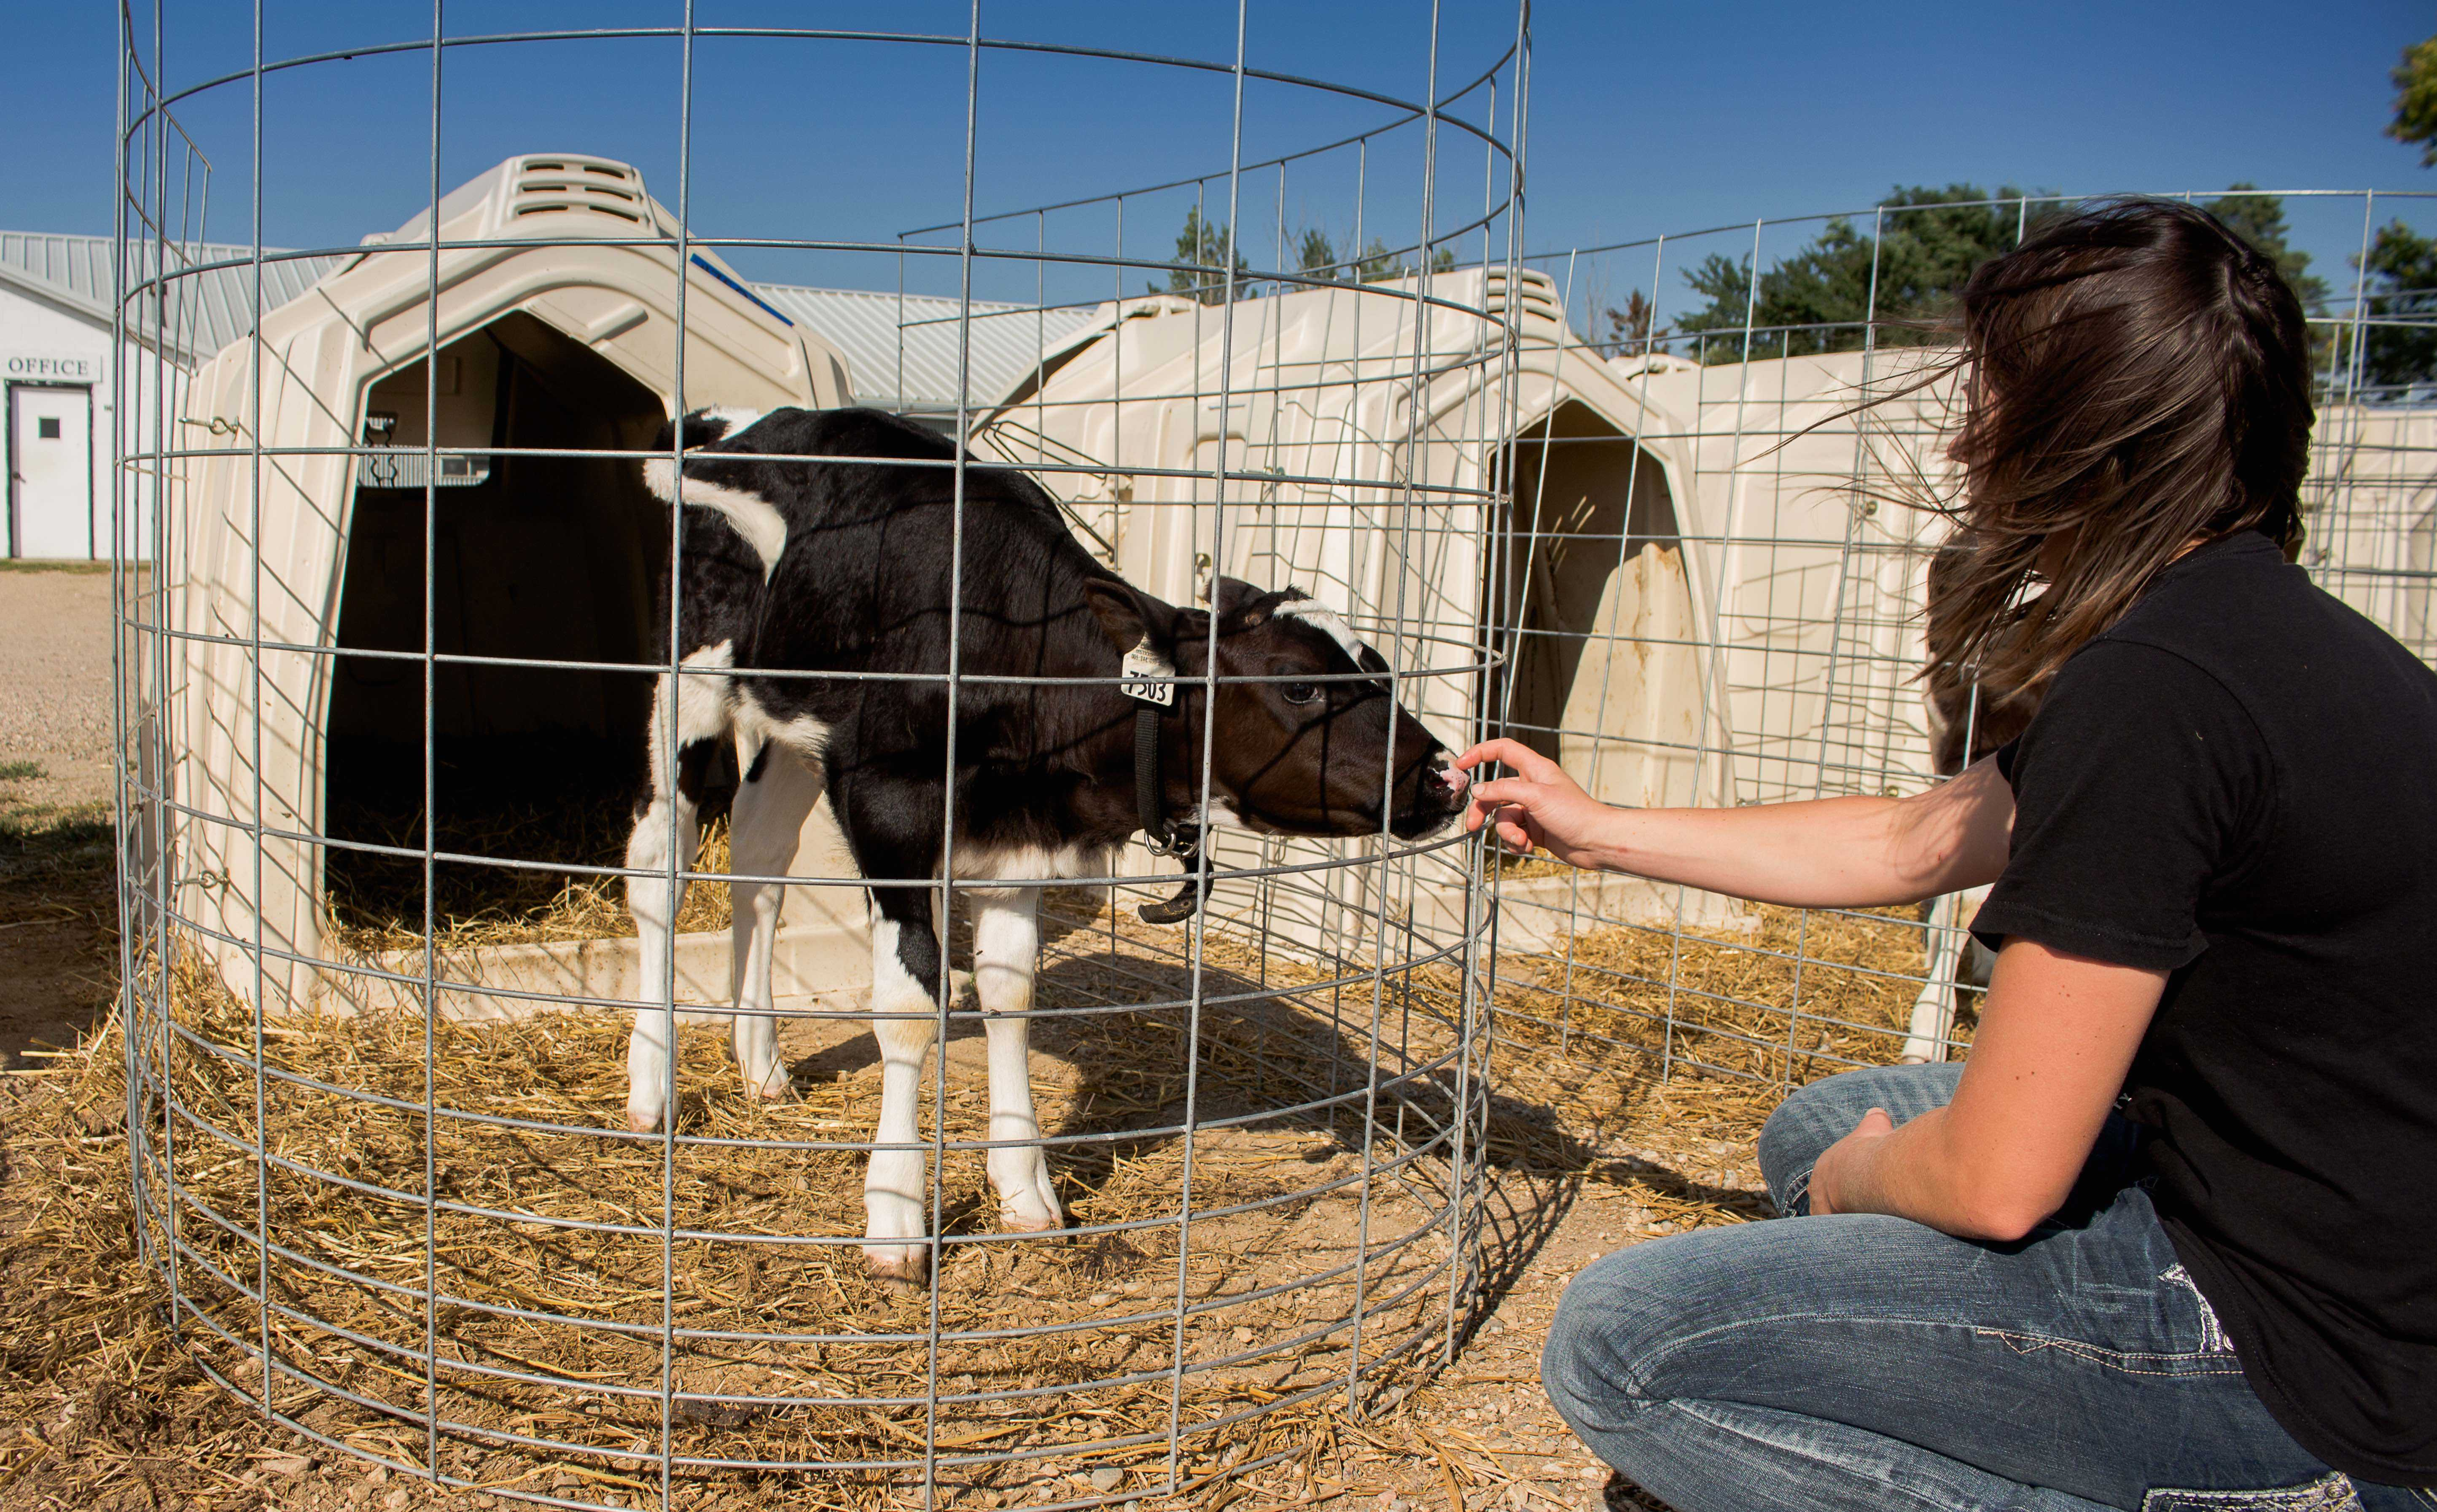 FRANKIE HERRERA Chelsea Schossow, a graduate research assistant, works with a calf at the Dairy Research and Training Facility Sept. 22. The facility holds about 300 head of cattle, including calves and lactating cows.